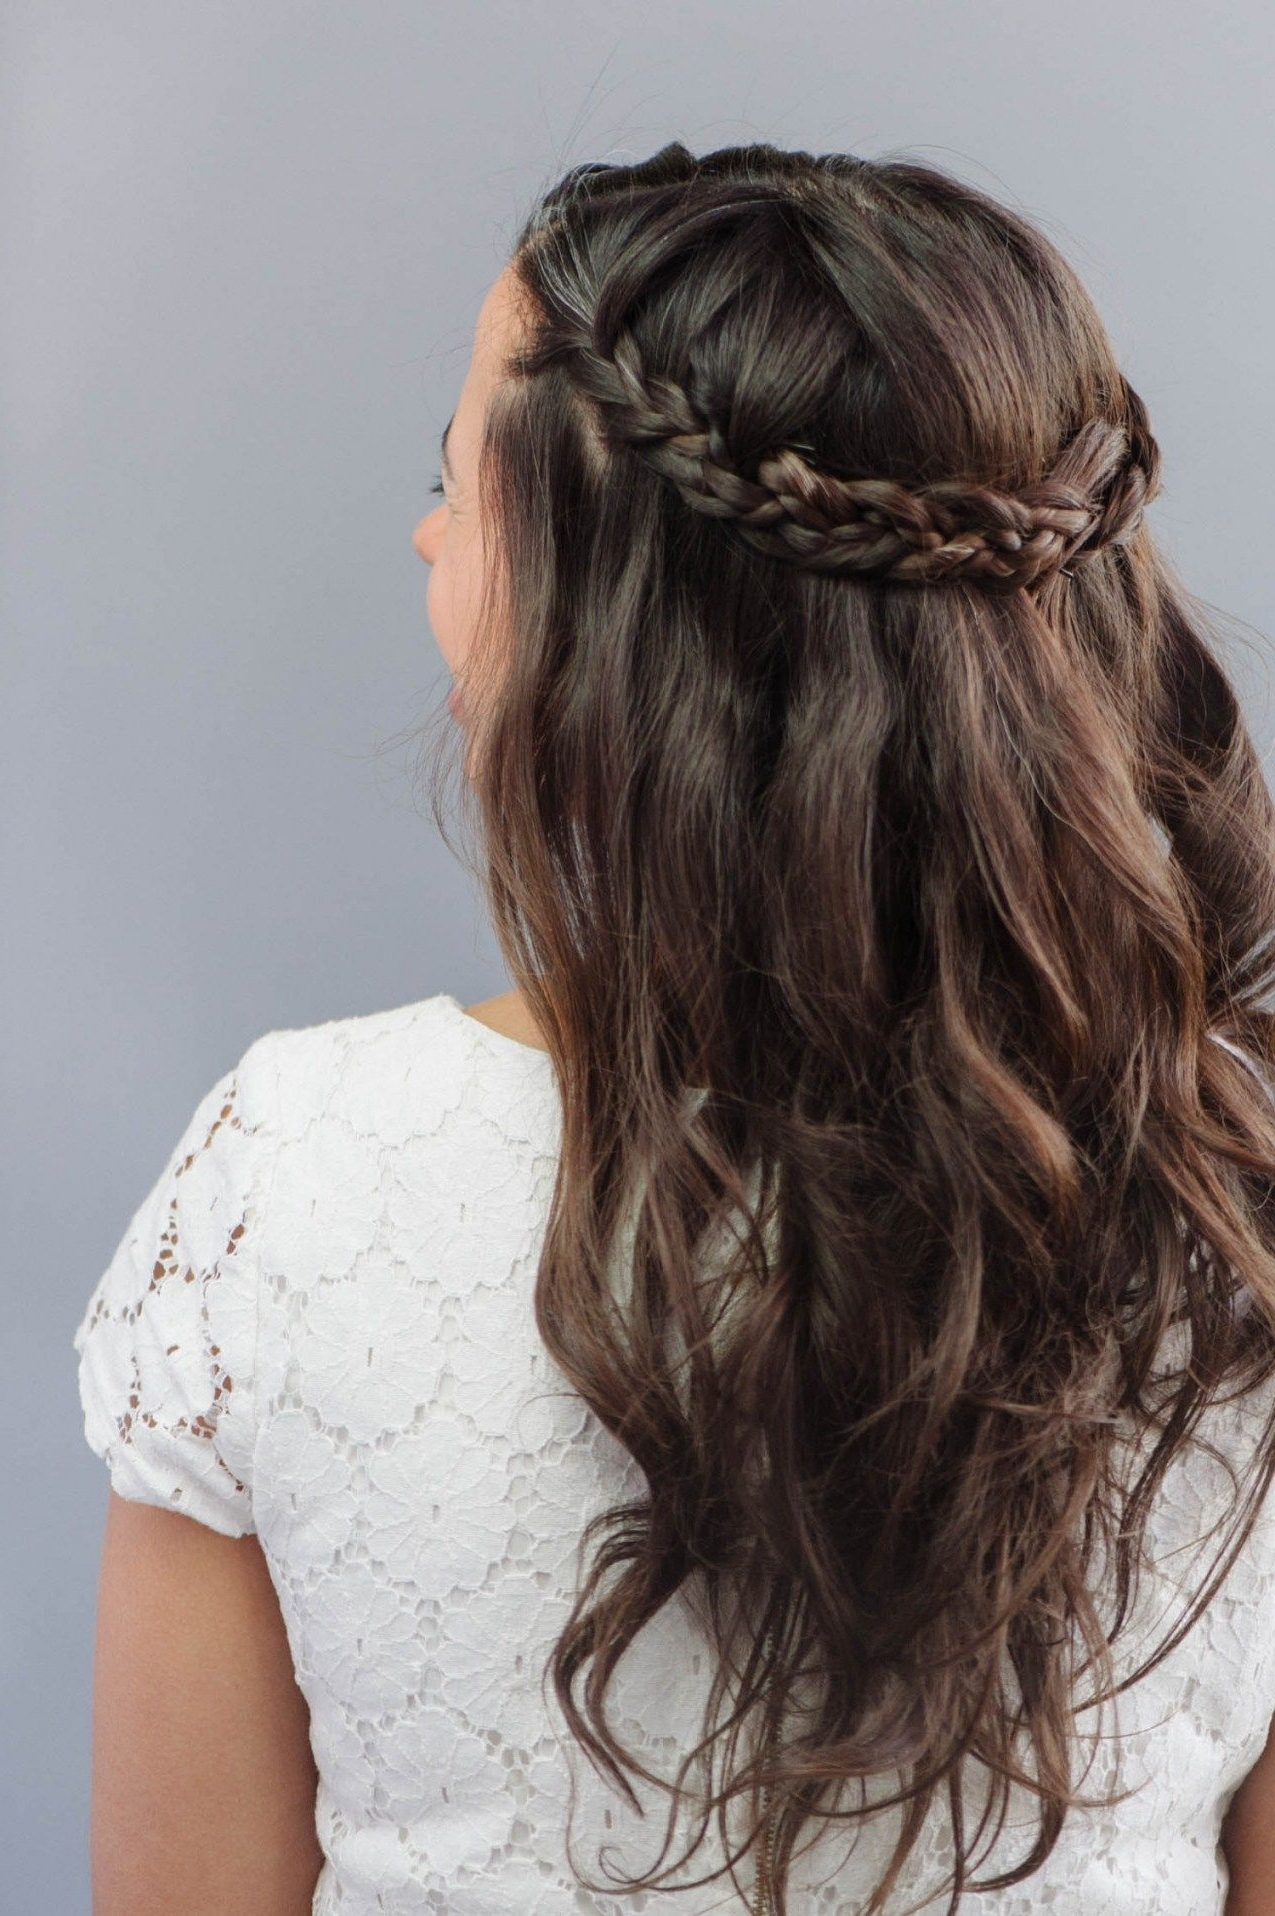 Hairstyles Ideas For Me (View 3 of 15)